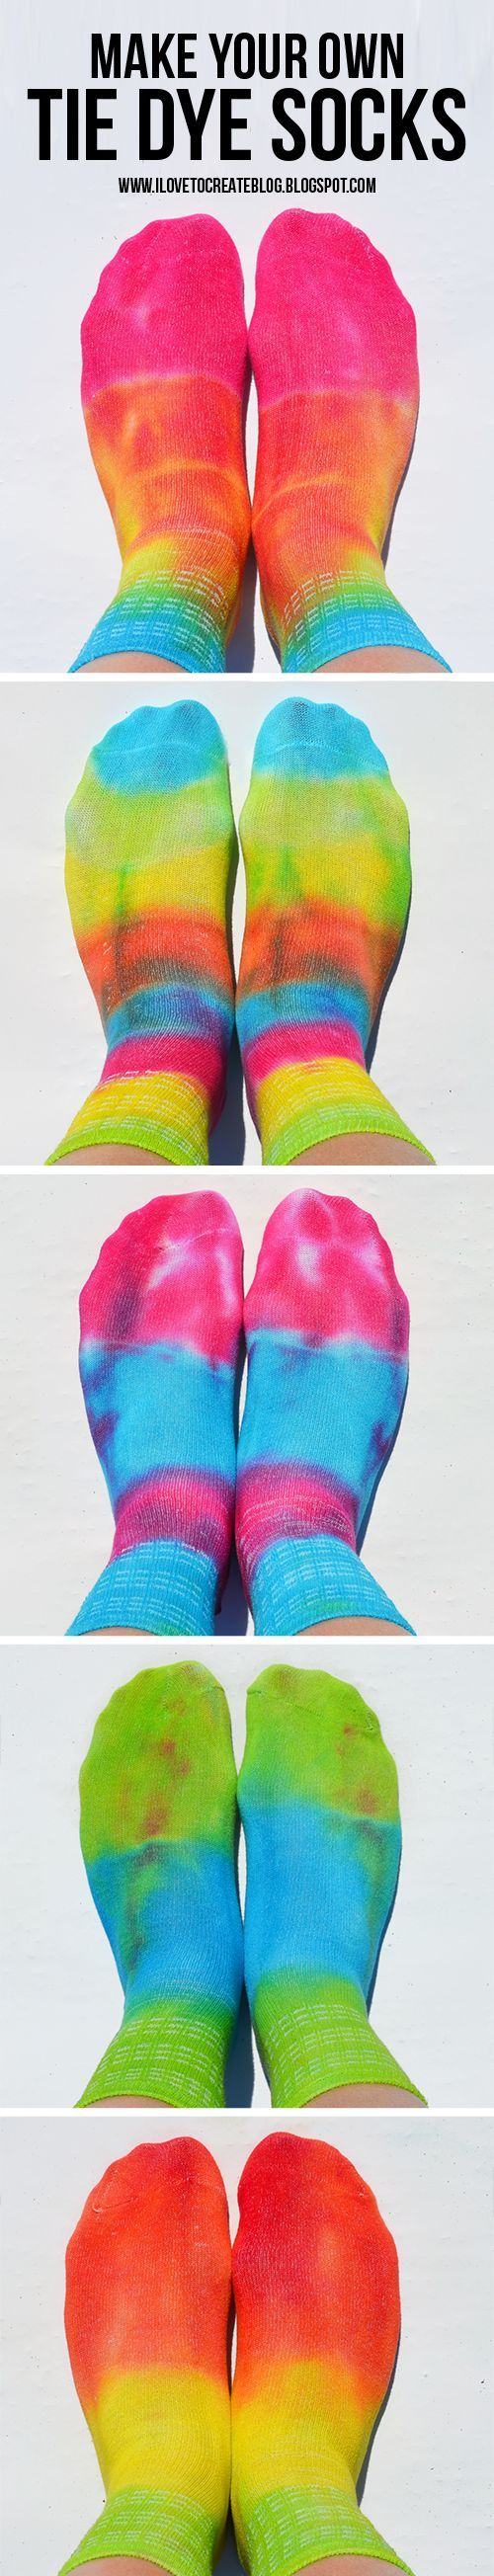 14 DIY Tie Dye Projects - Craft TeenCraft Teen                                                                                                                                                      More